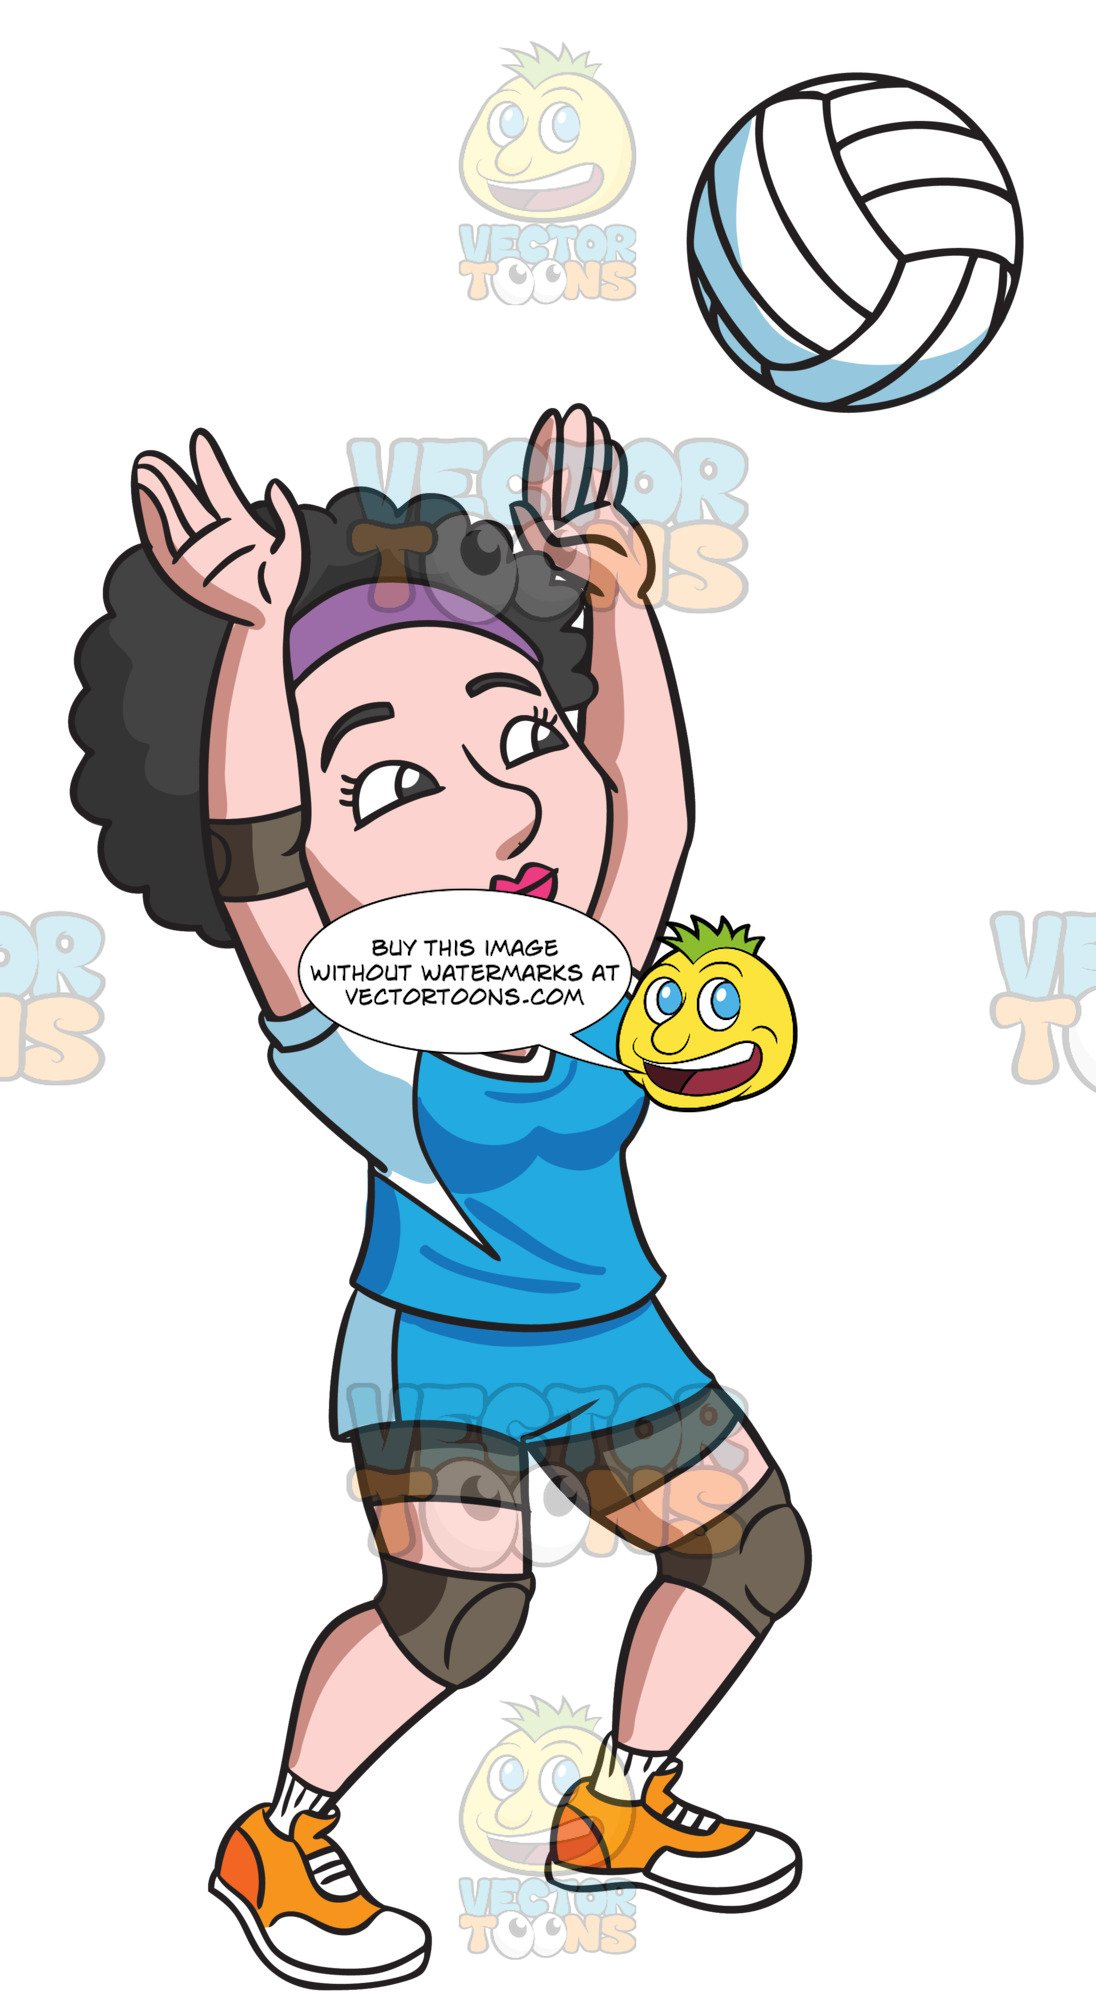 Volleyball player clipart blocking clip freeuse download A Female Volleyball Player Blocking A Ball clip freeuse download